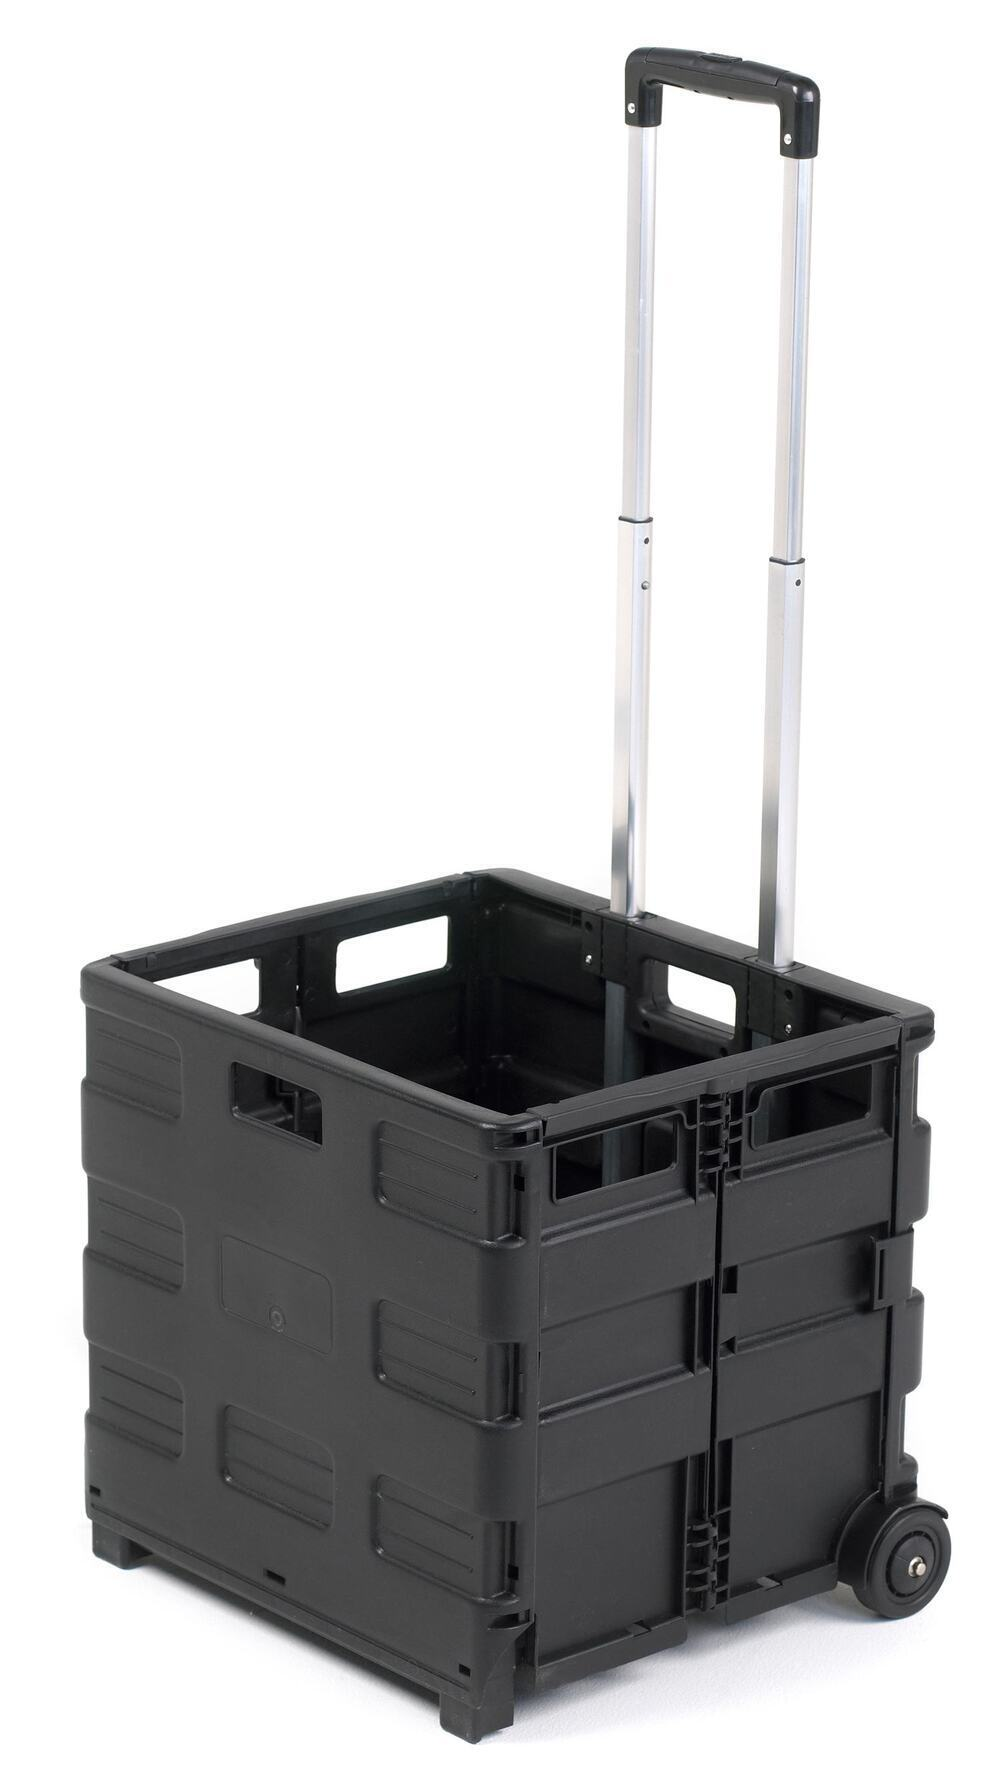 Folding Box Truck 990 X 460 X 390mm Black